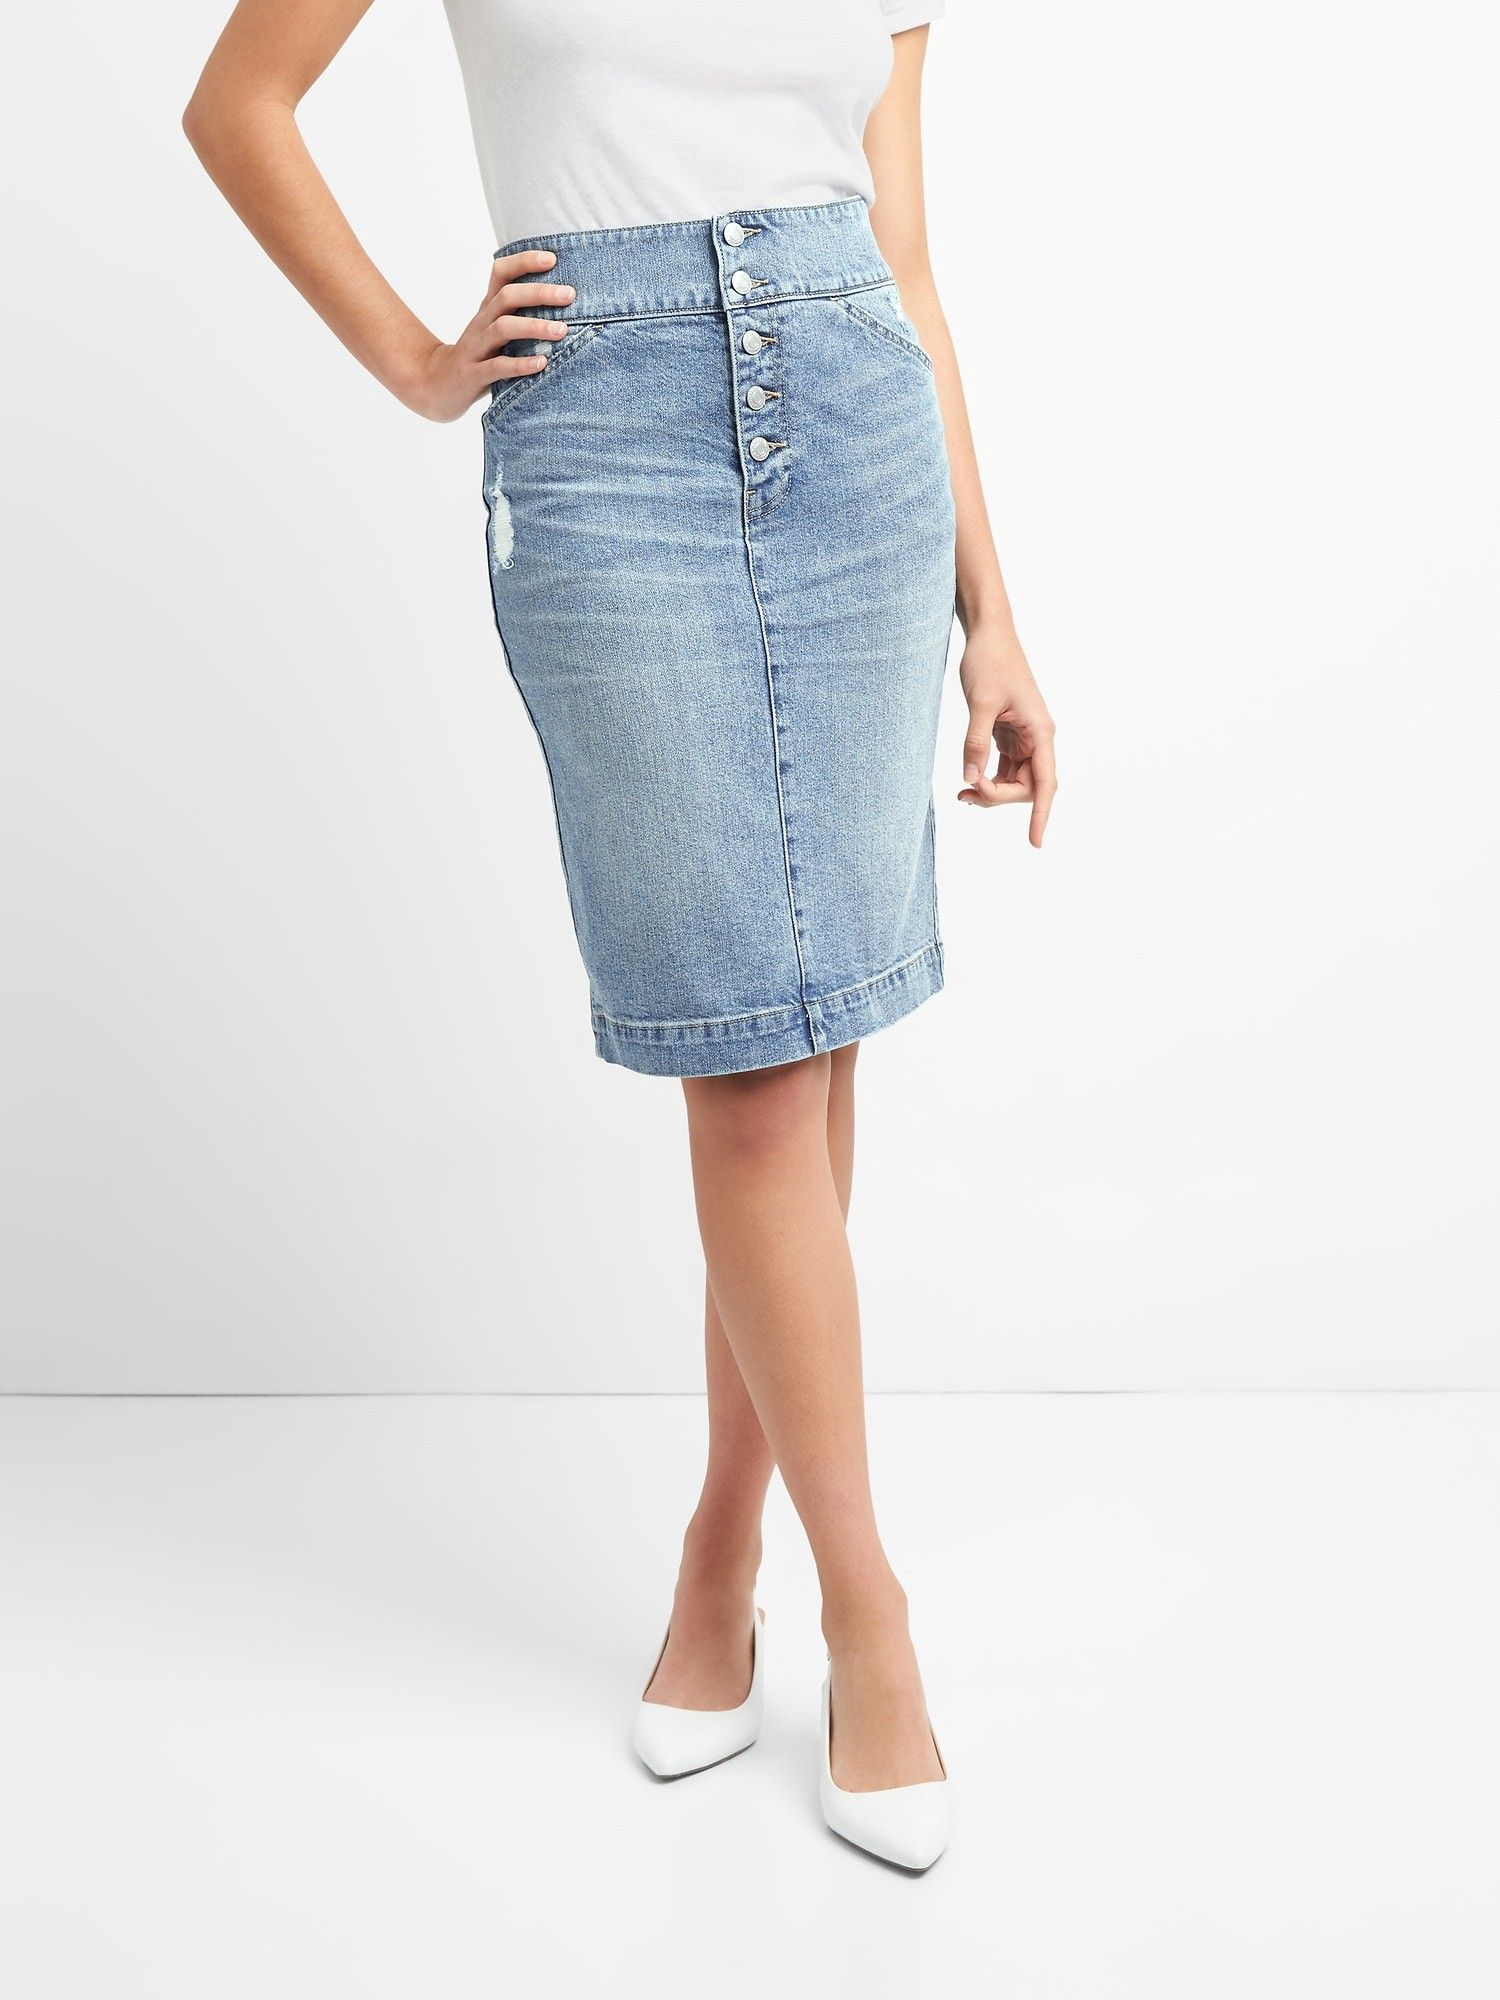 Gap Womens Denim Pencil Skirt With ButtonFly Regular 33